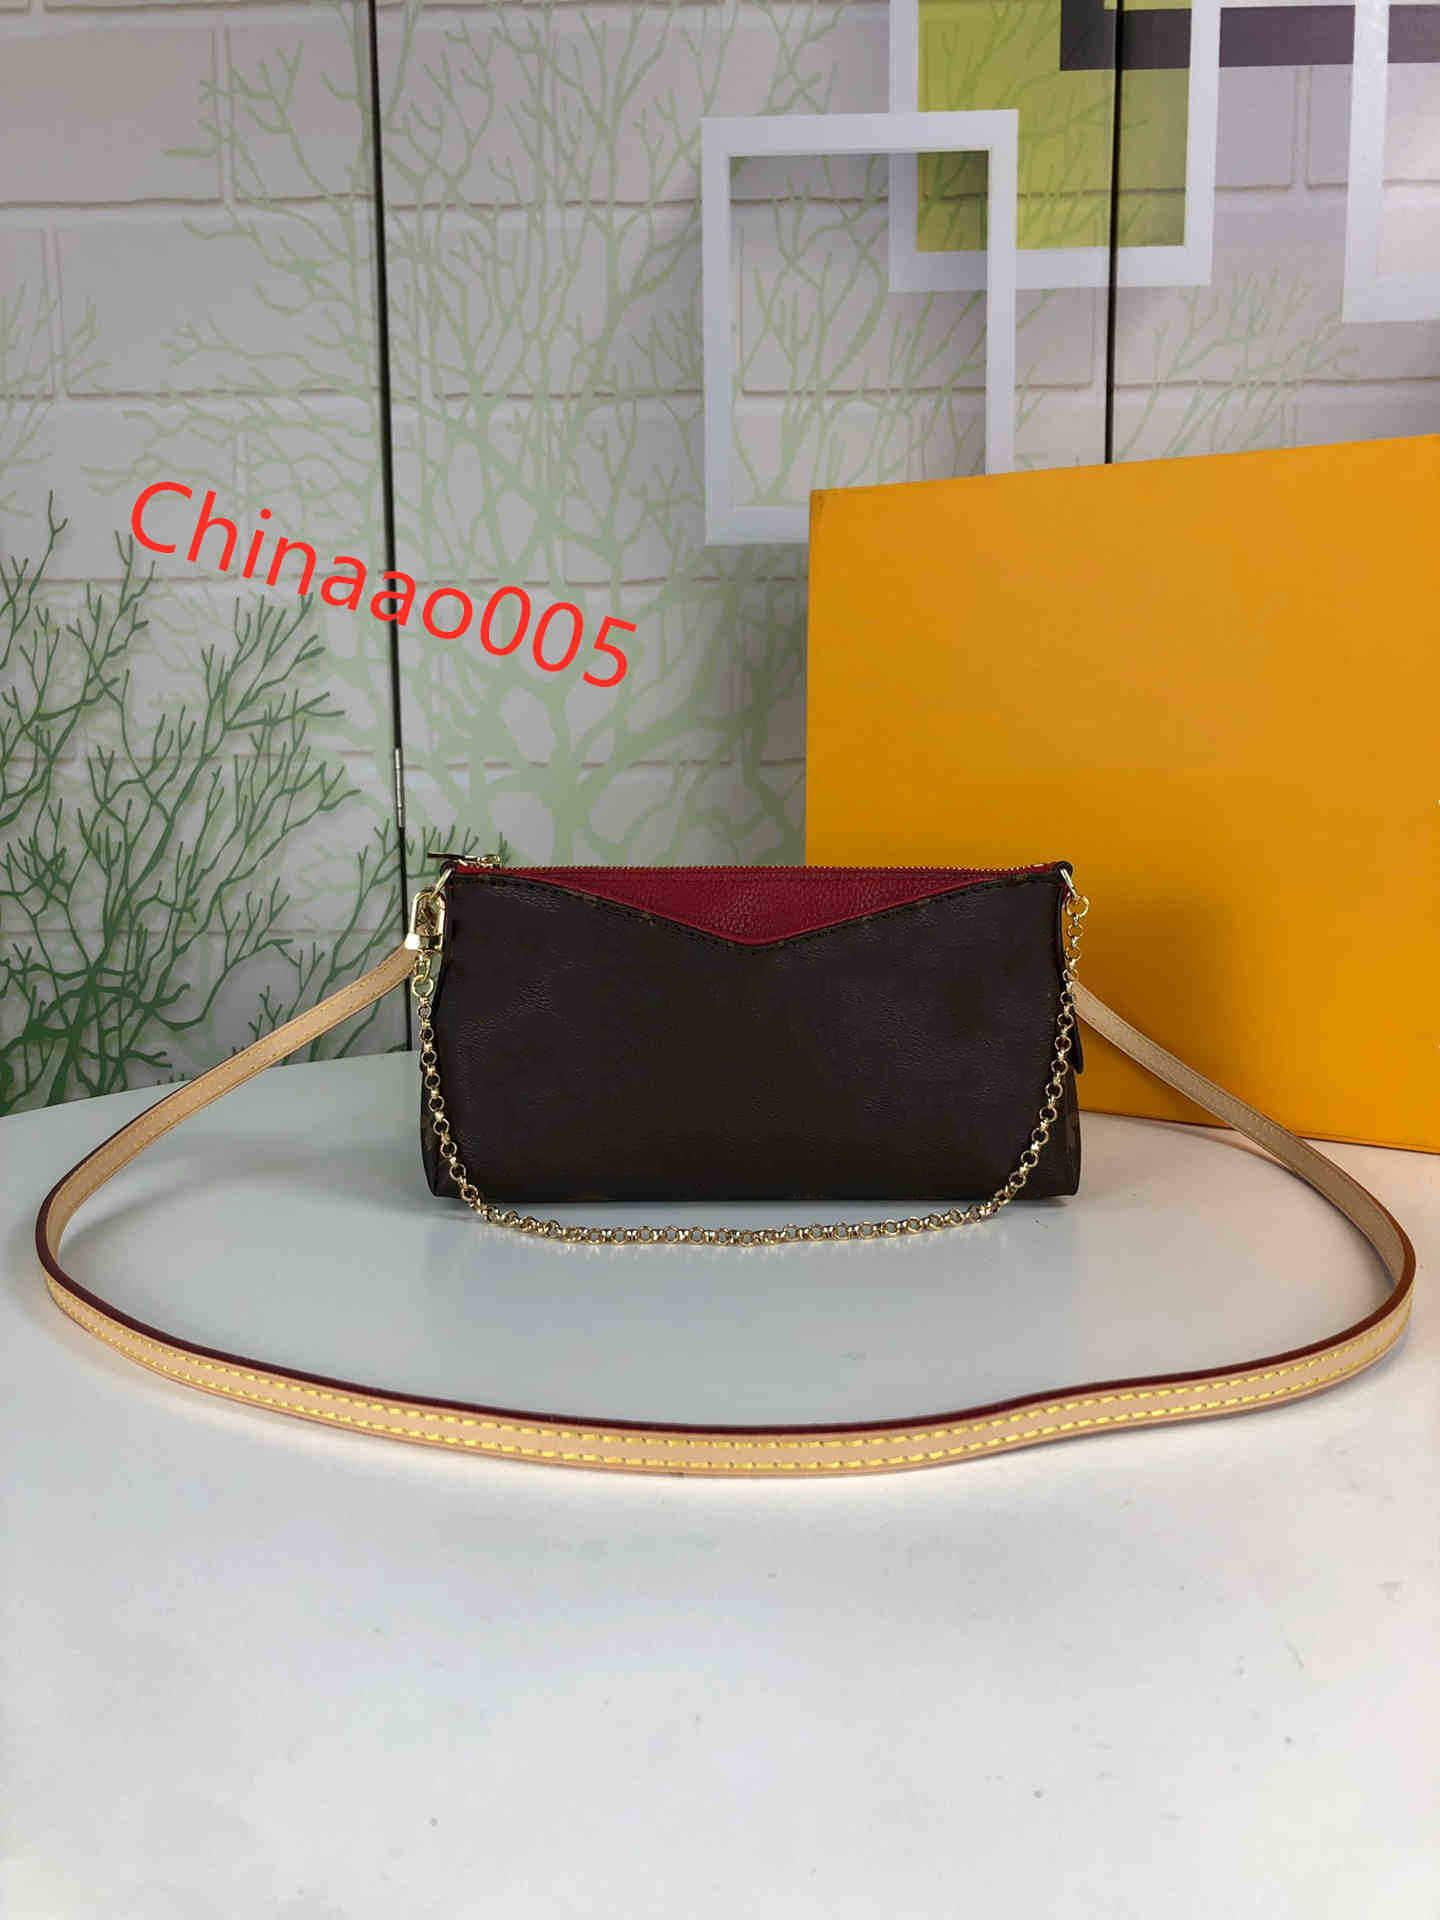 2020 latest fashion shoulder bag, handbag, perfect quality, leather quality, model: M41638 size: 23-13-5, free delivery, welcome to buy.